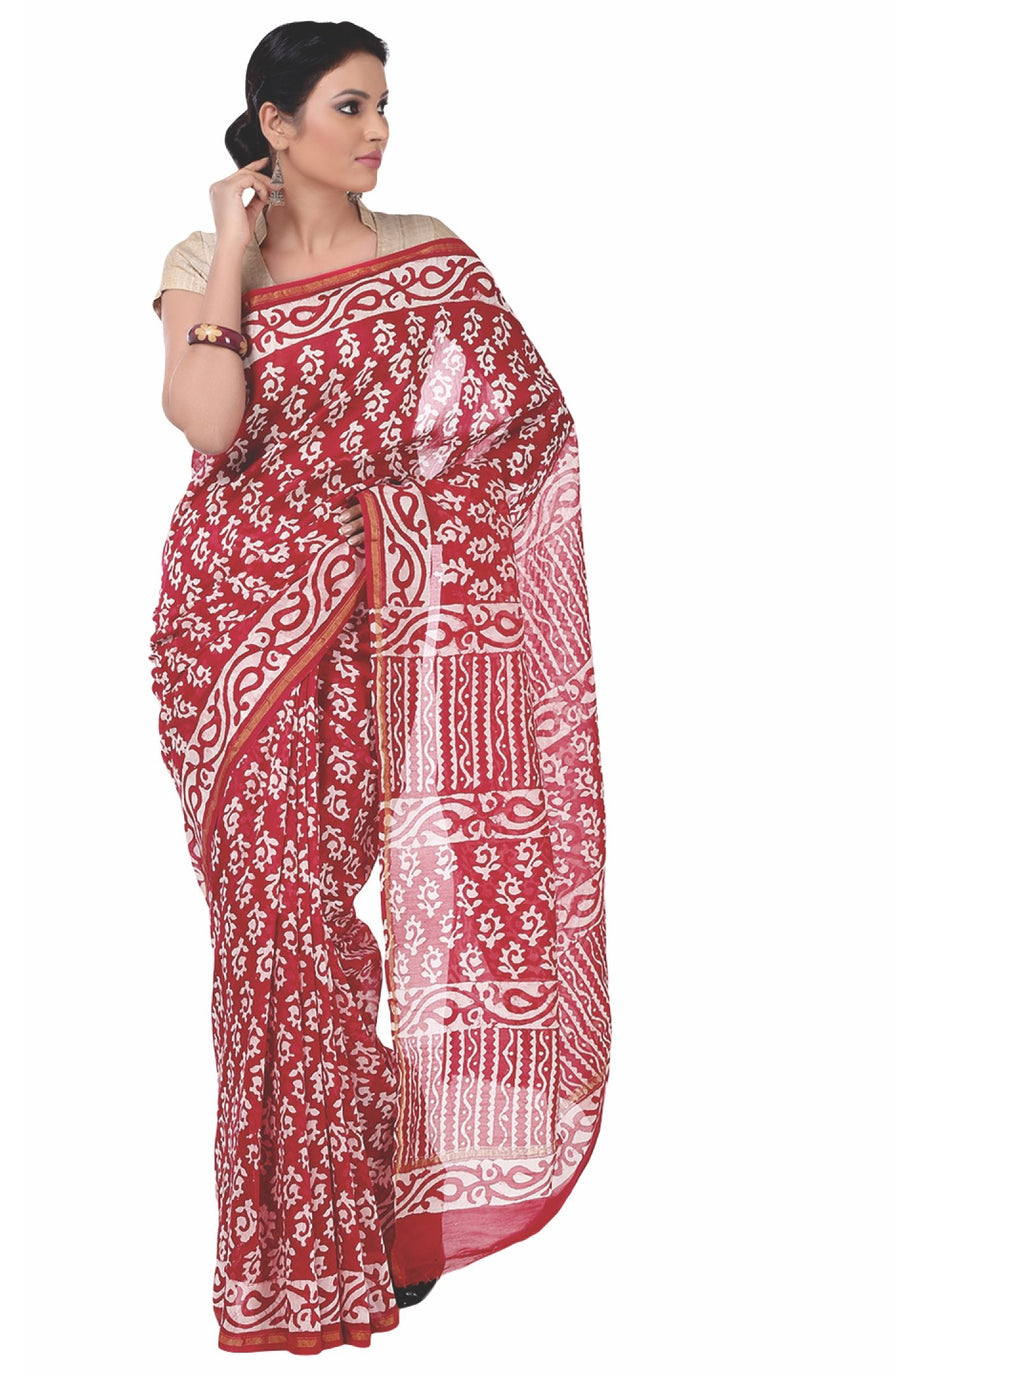 Red Chanderi Silk Batik Hand Block Print Handcrafted Saree-Saree-Kalakari India-RDSNSA0055-Batik, Chanderi, Geographical Indication, Hand Blocks, Hand Crafted, Heritage Prints, Sarees, Silk, Sustainable Fabrics-[Linen,Ethnic,wear,Fashionista,Handloom,Handicraft,Indigo,blockprint,block,print,Cotton,Chanderi,Blue, latest,classy,party,bollywood,trendy,summer,style,traditional,formal,elegant,unique,style,hand,block,print, dabu,booti,gift,present,glamorous,affordable,collectible,Sari,Saree,printed, h